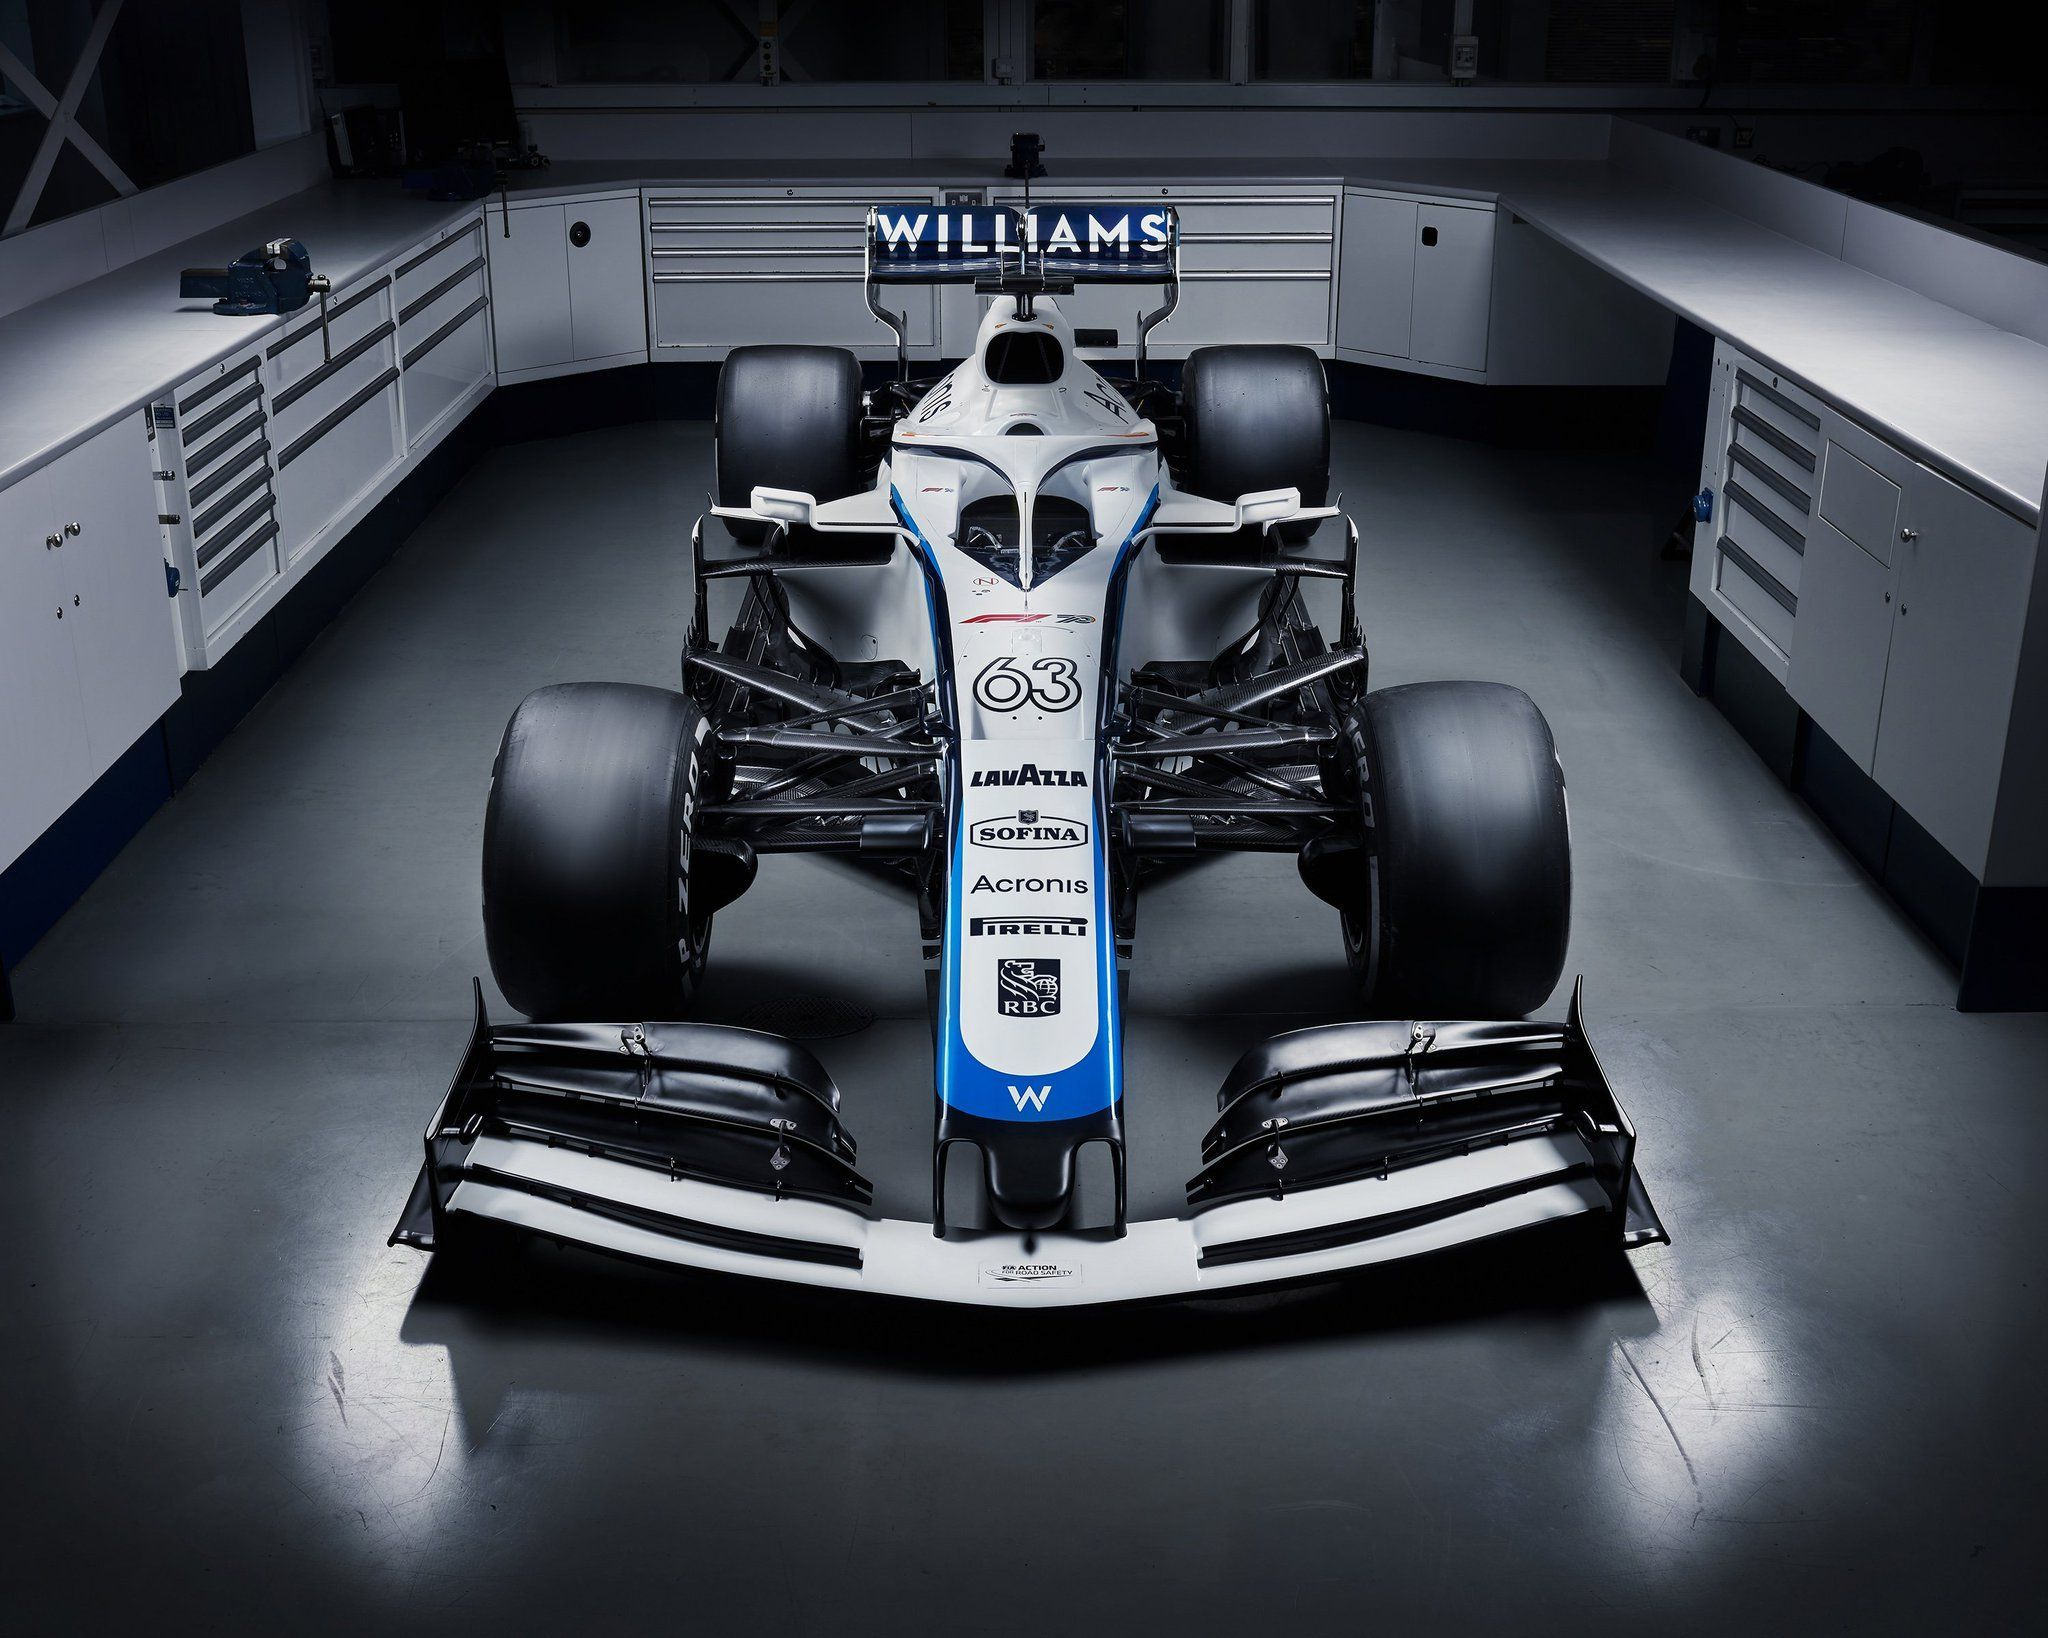 Williams Racing Background 10